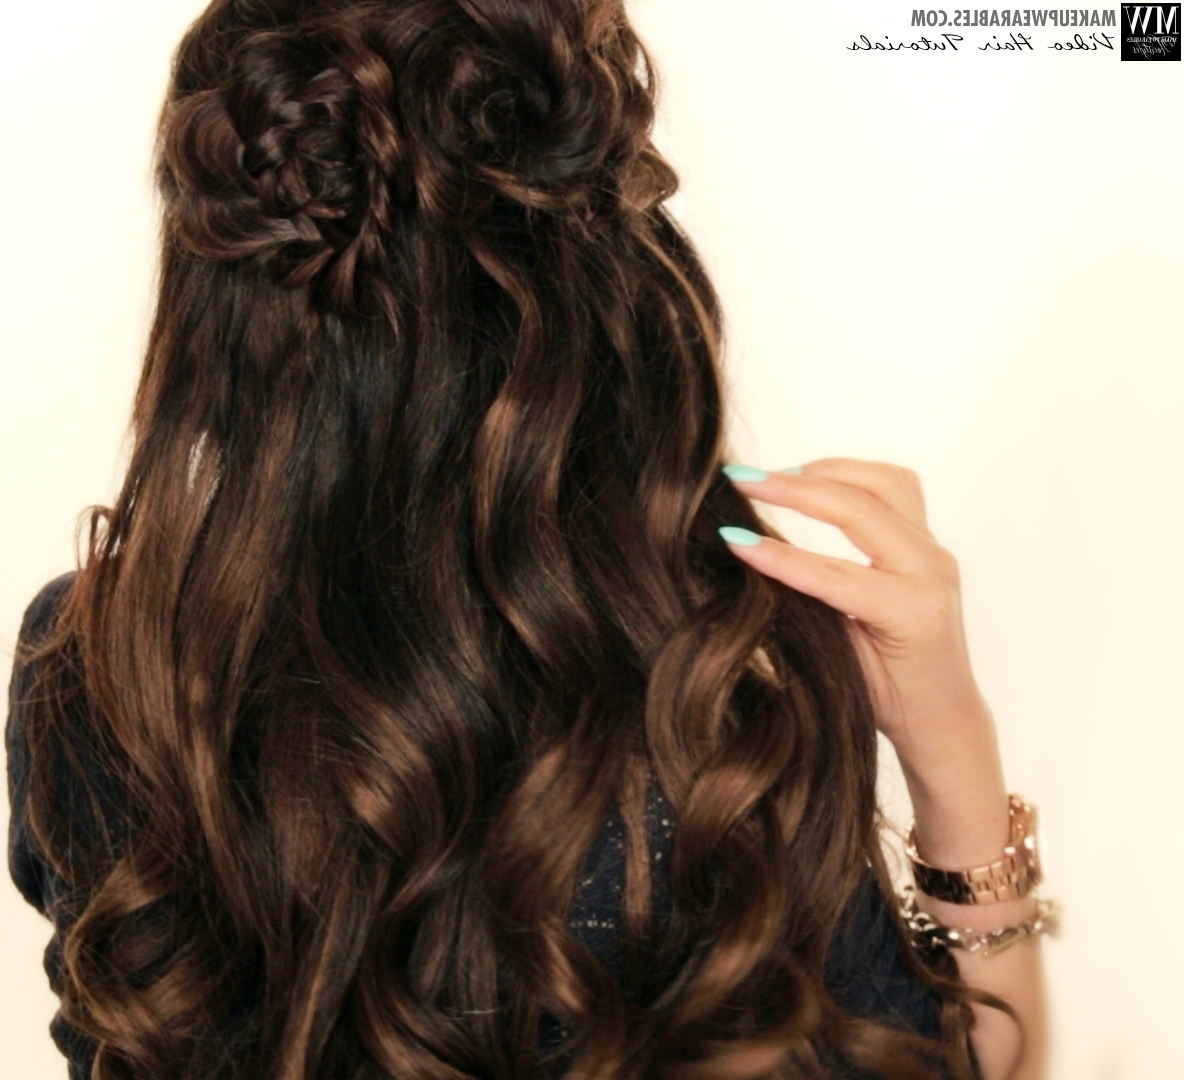 Well Known Floral Braid Crowns Hairstyles For Prom Inside Spring Flower Braid Half Up Half Down Hairstyle (View 20 of 20)